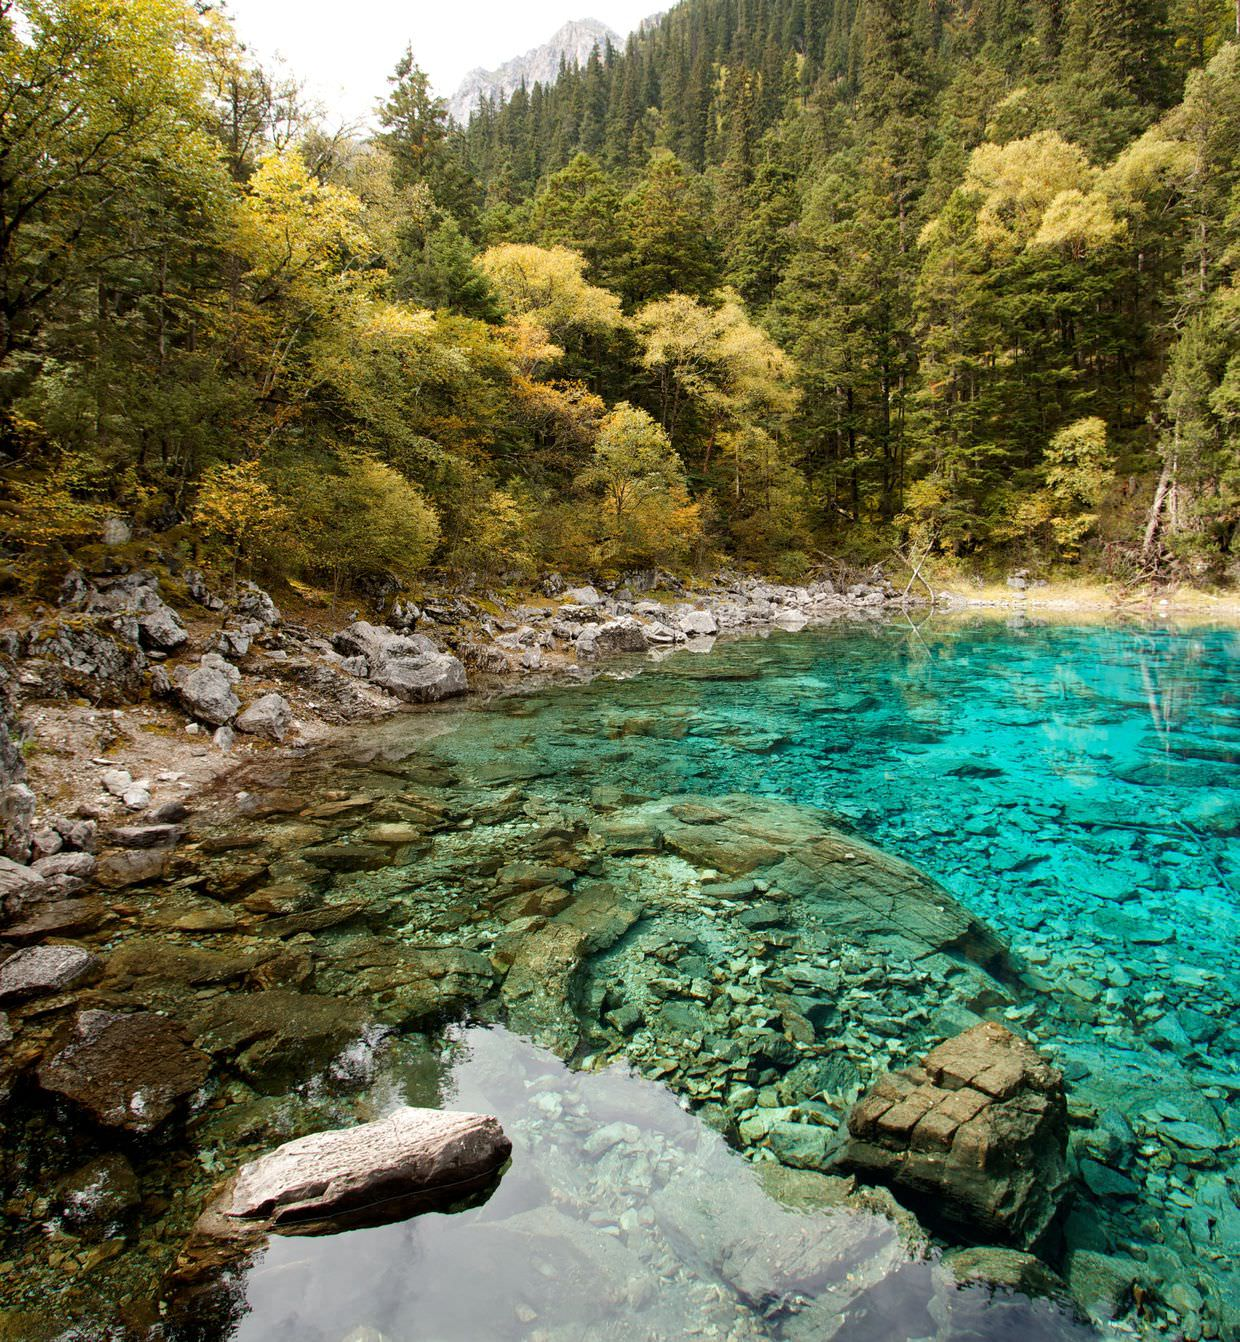 Turquoise and crystal clear Five-colour pond